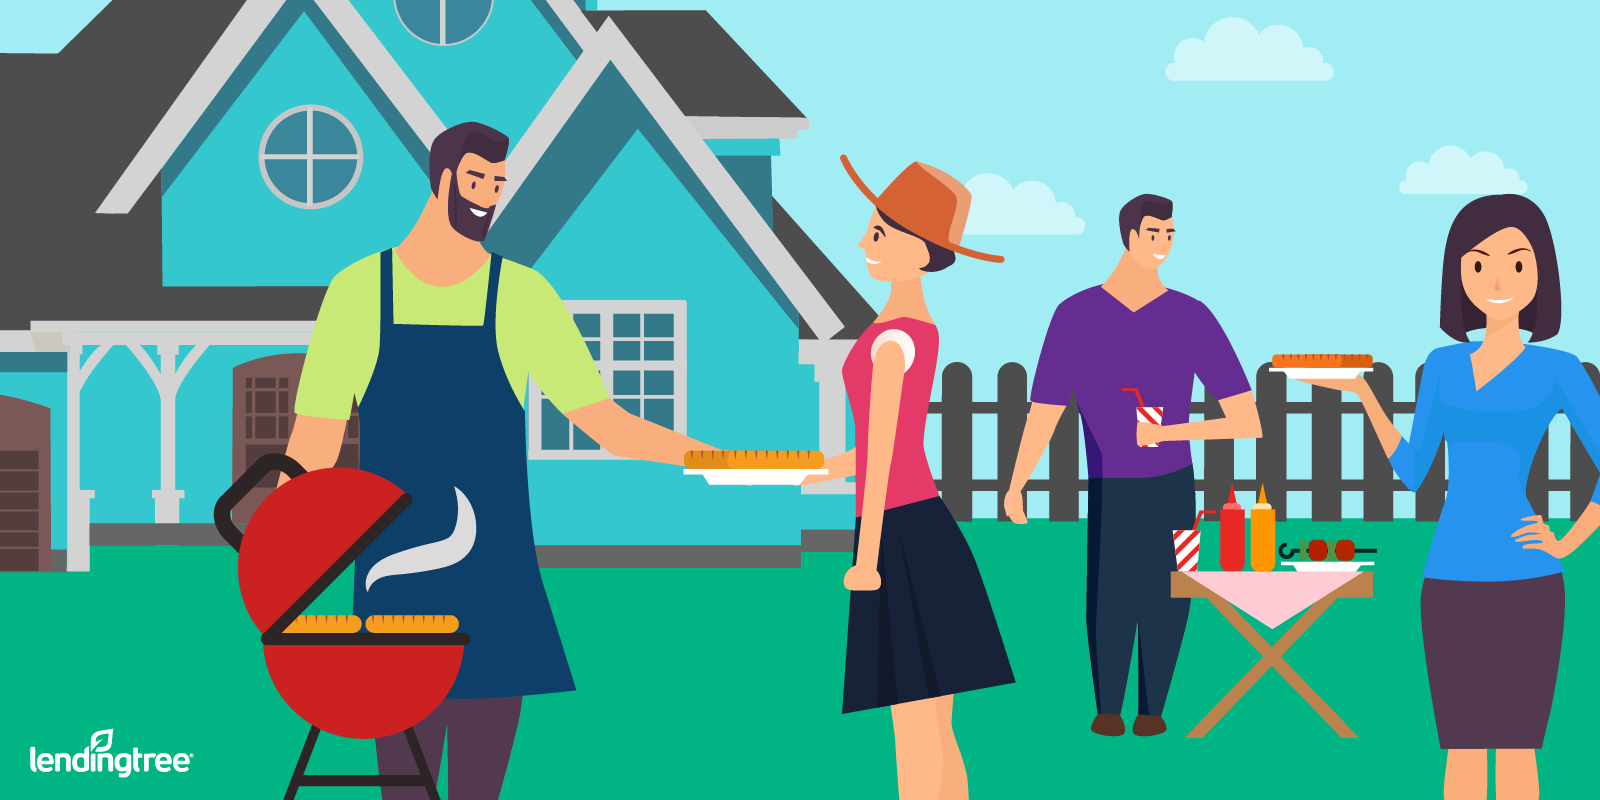 86% of Homeowners Are Friends With Their Neighbors